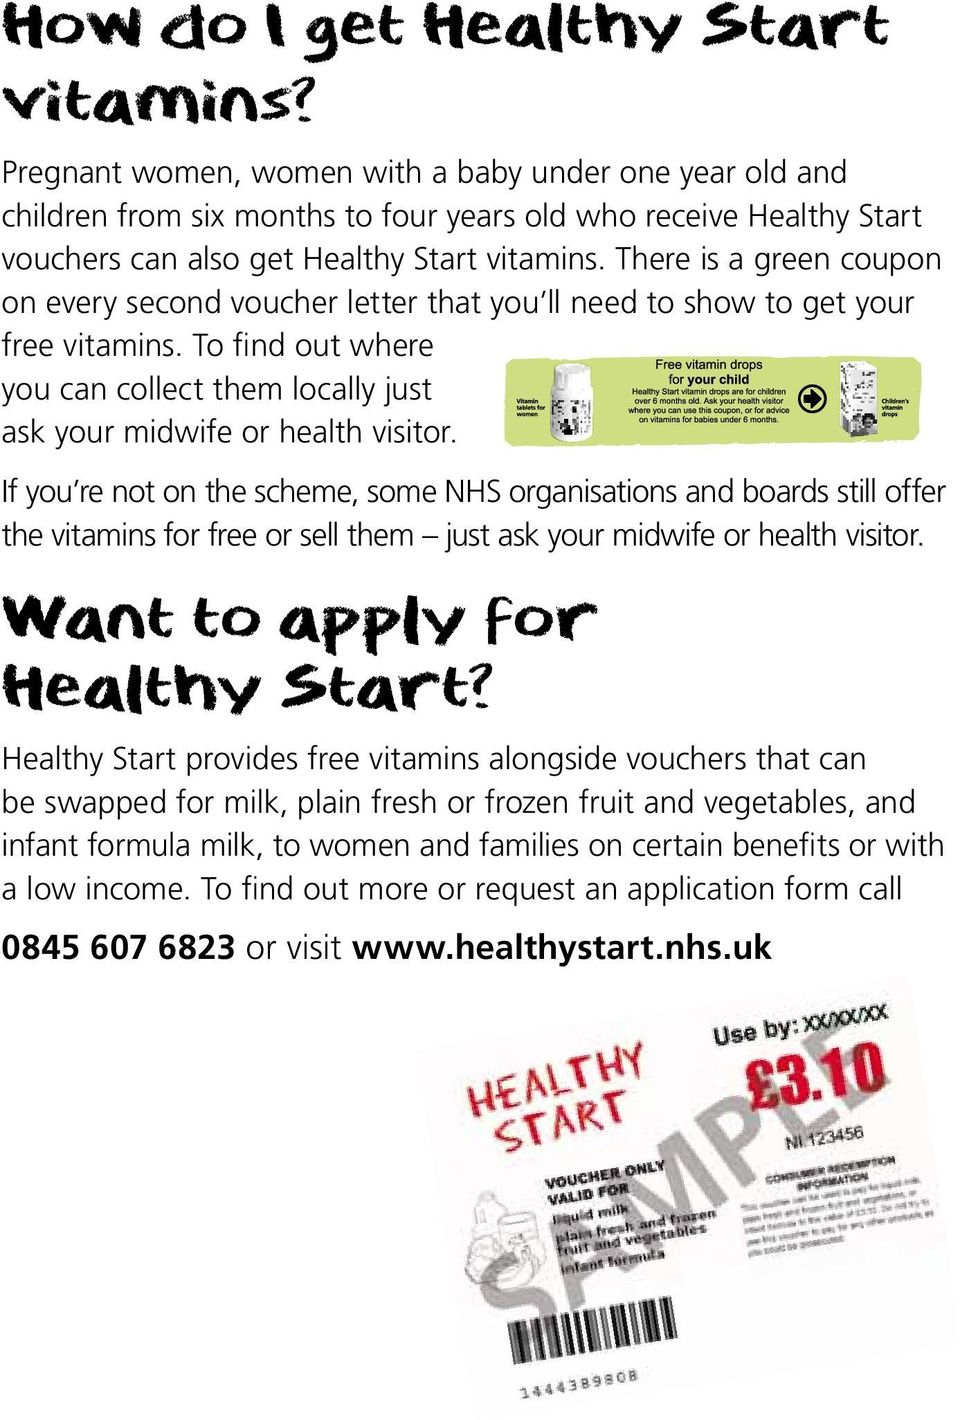 There is a green coupon on every second voucher letter that you ll need to show to get your free vitamins. To find out where you can collect them locally just ask your midwife or health visitor.